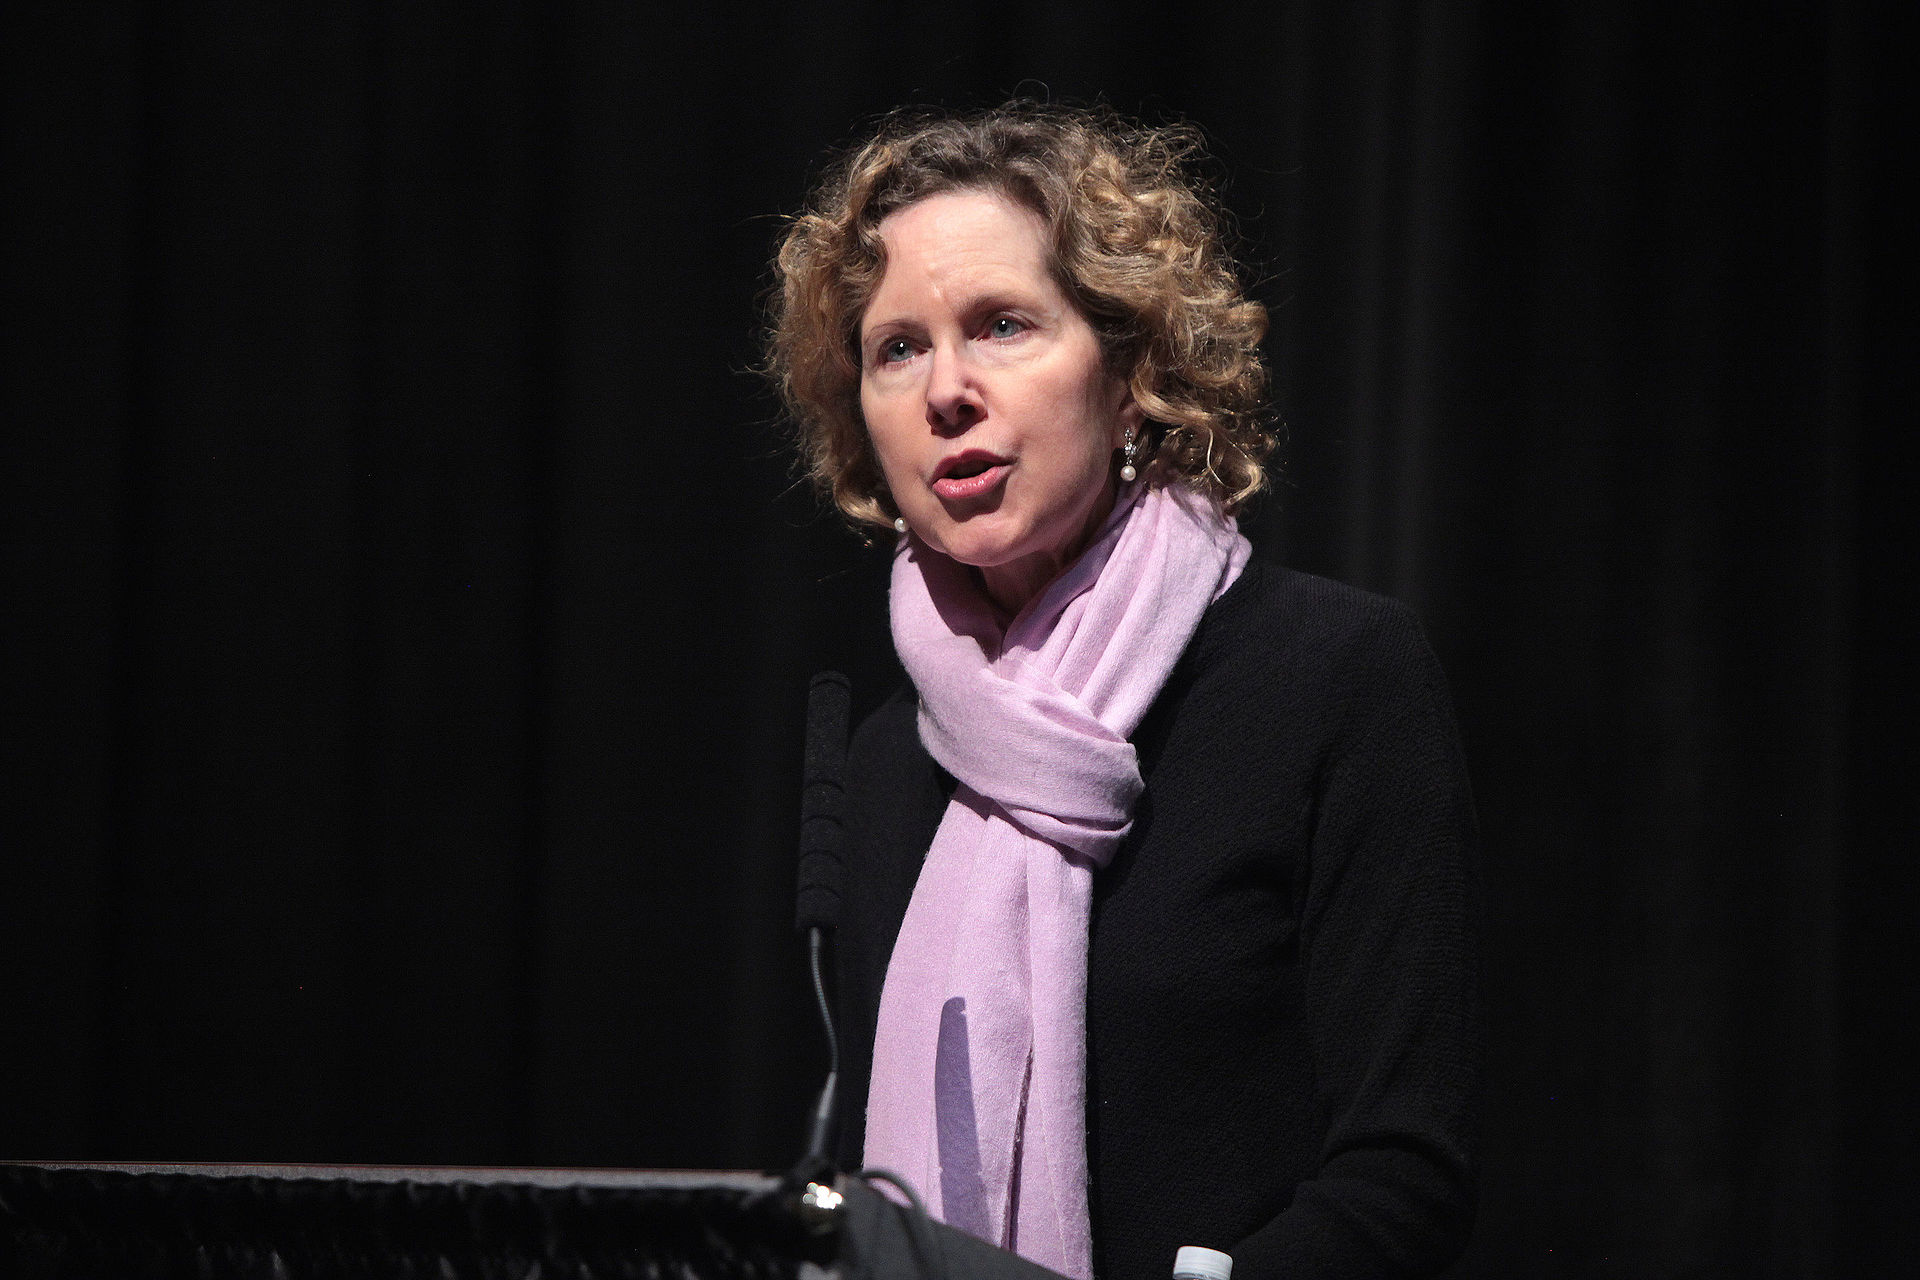 Heather Mac Donald Red for the Blue